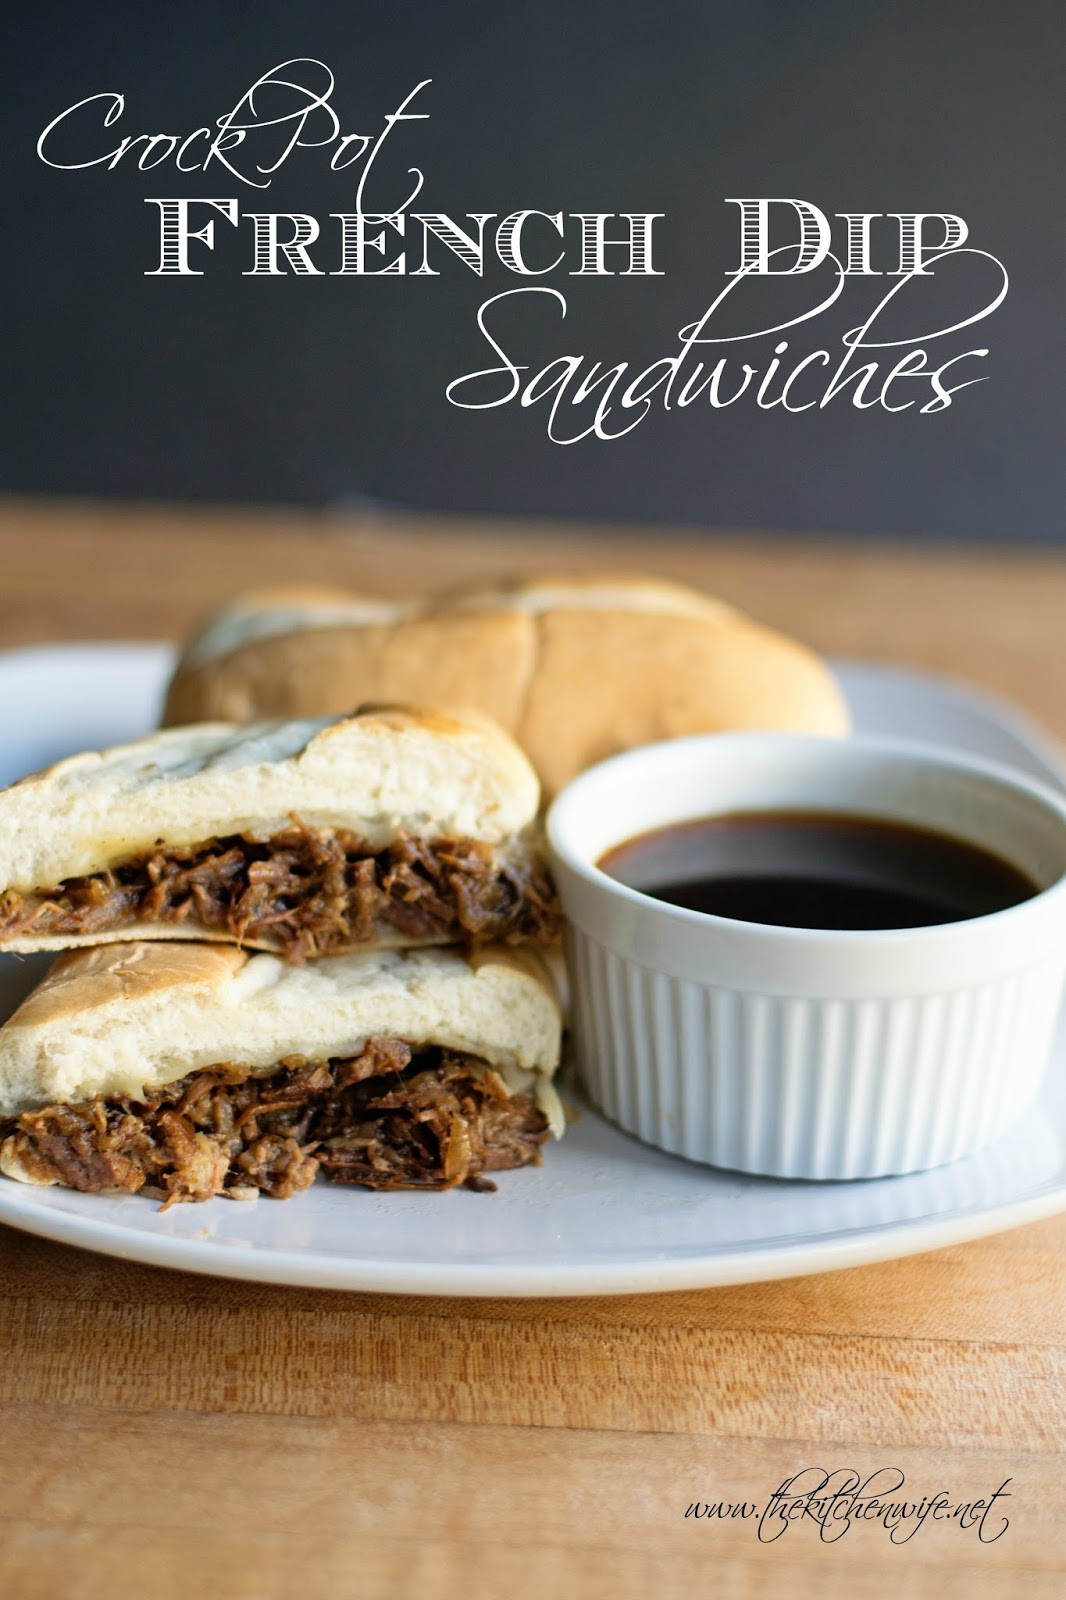 """Slow Cooker French Dip Sandwich Recipe Video What is a French Dip Sandwich? The classic French Dip Sandwich is a hot sandwich boasting tender thin slices of beef layered on a long French roll, often with melted cheese, then dipped in a flavorful sauce made from the pan juices called """"au jus,"""" French for """"with broth"""" or """"with juice.""""Reviews:"""